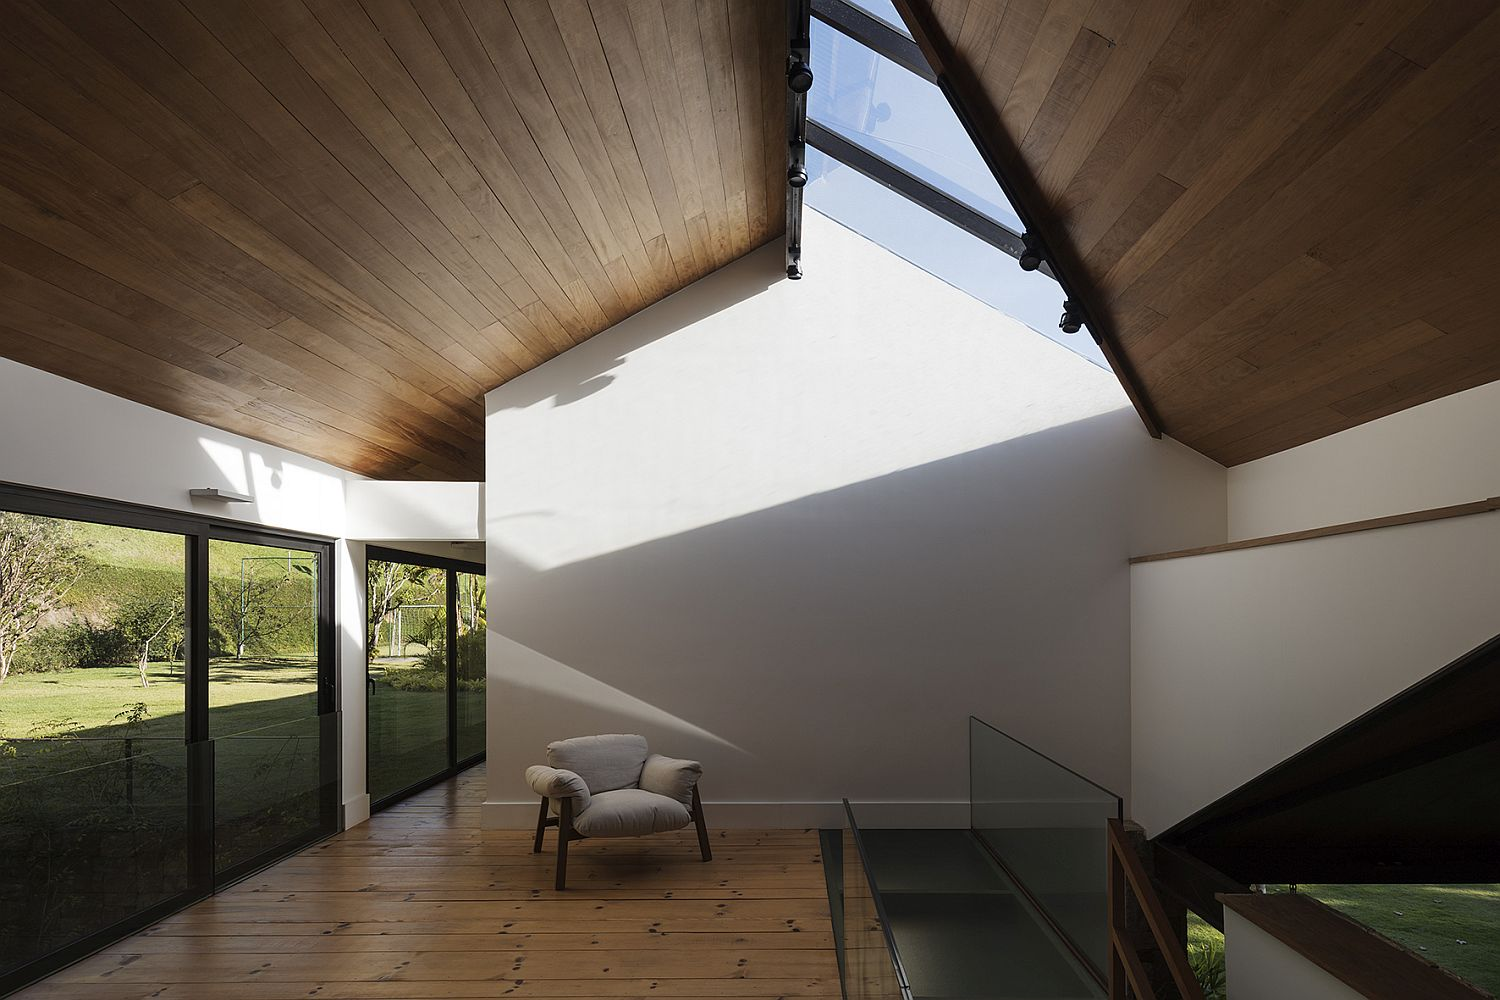 Spacious-interior-and-skylights-create-a-gorgeous-upper-level-at-the-AS-House